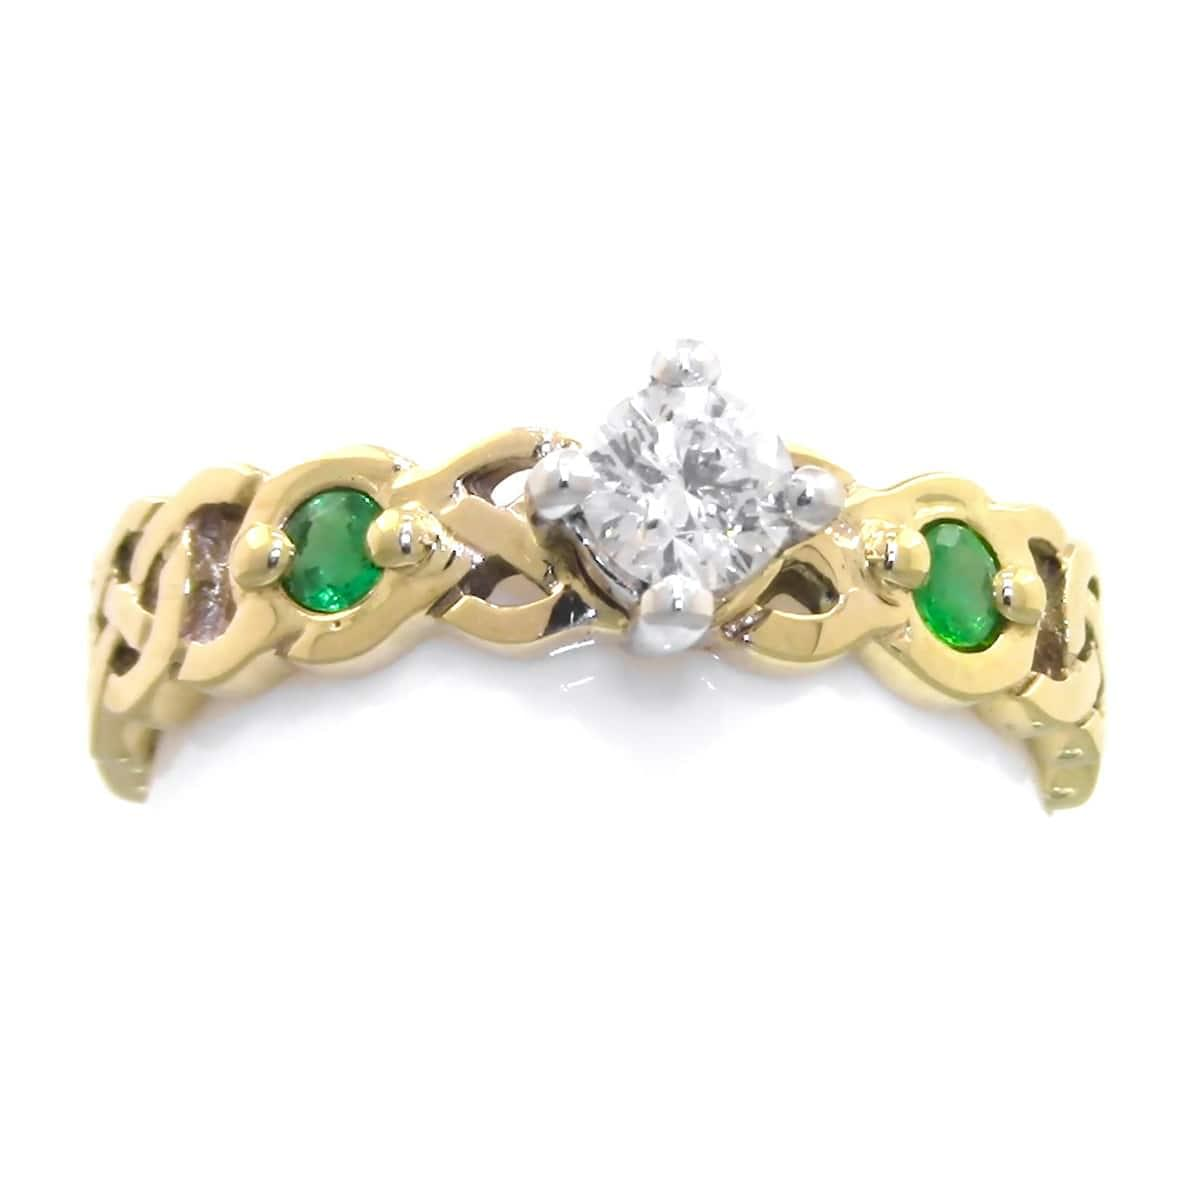 Celtic Knot Engagement Ring Emerald And Diamond In Gold